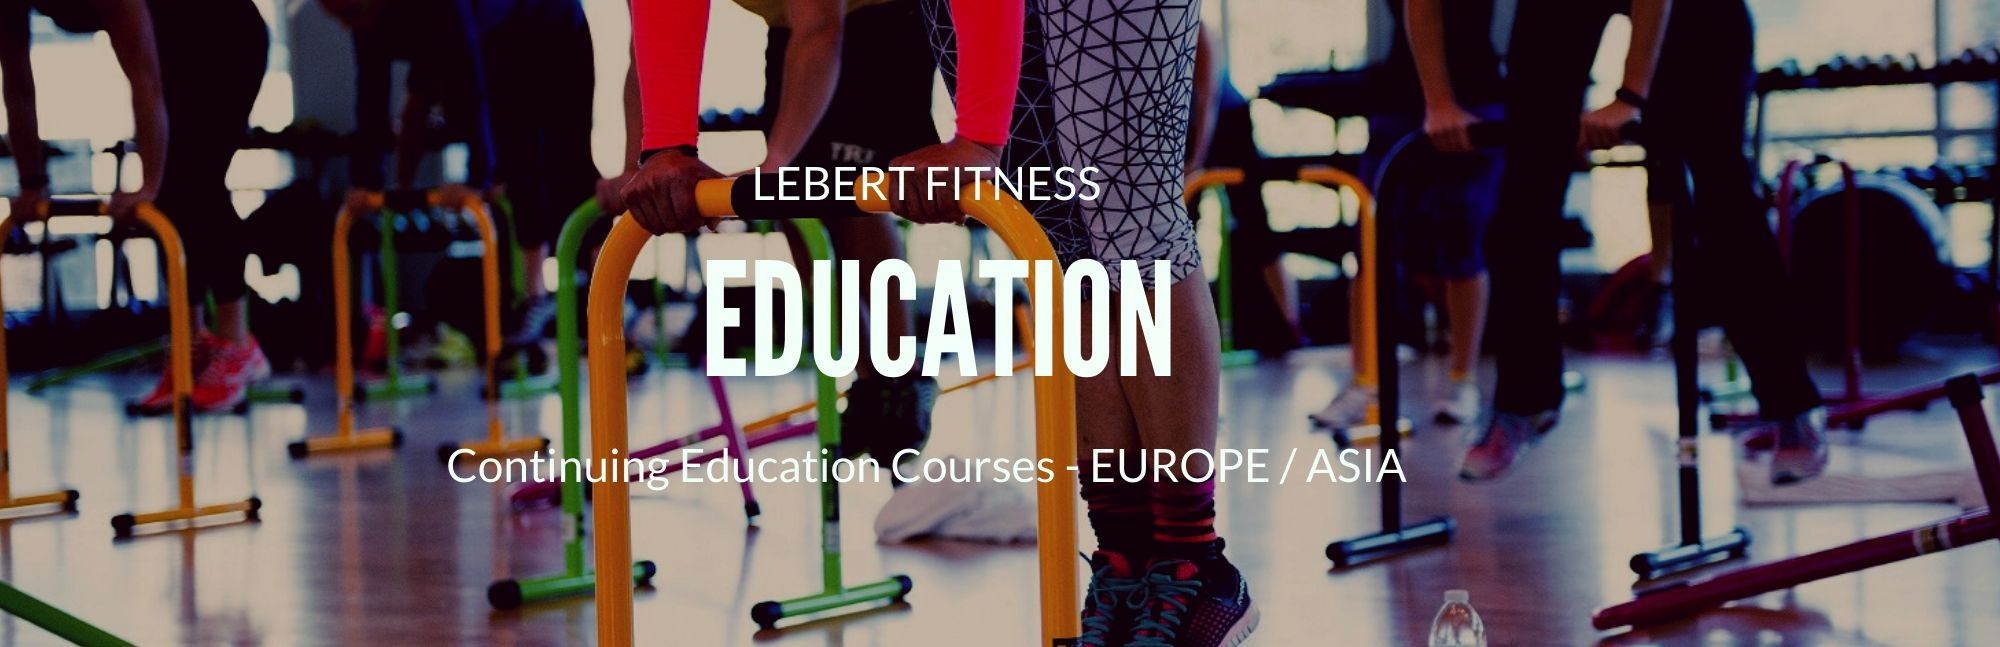 Lebert Fitness Continuing Education Courses in Europe/Asia